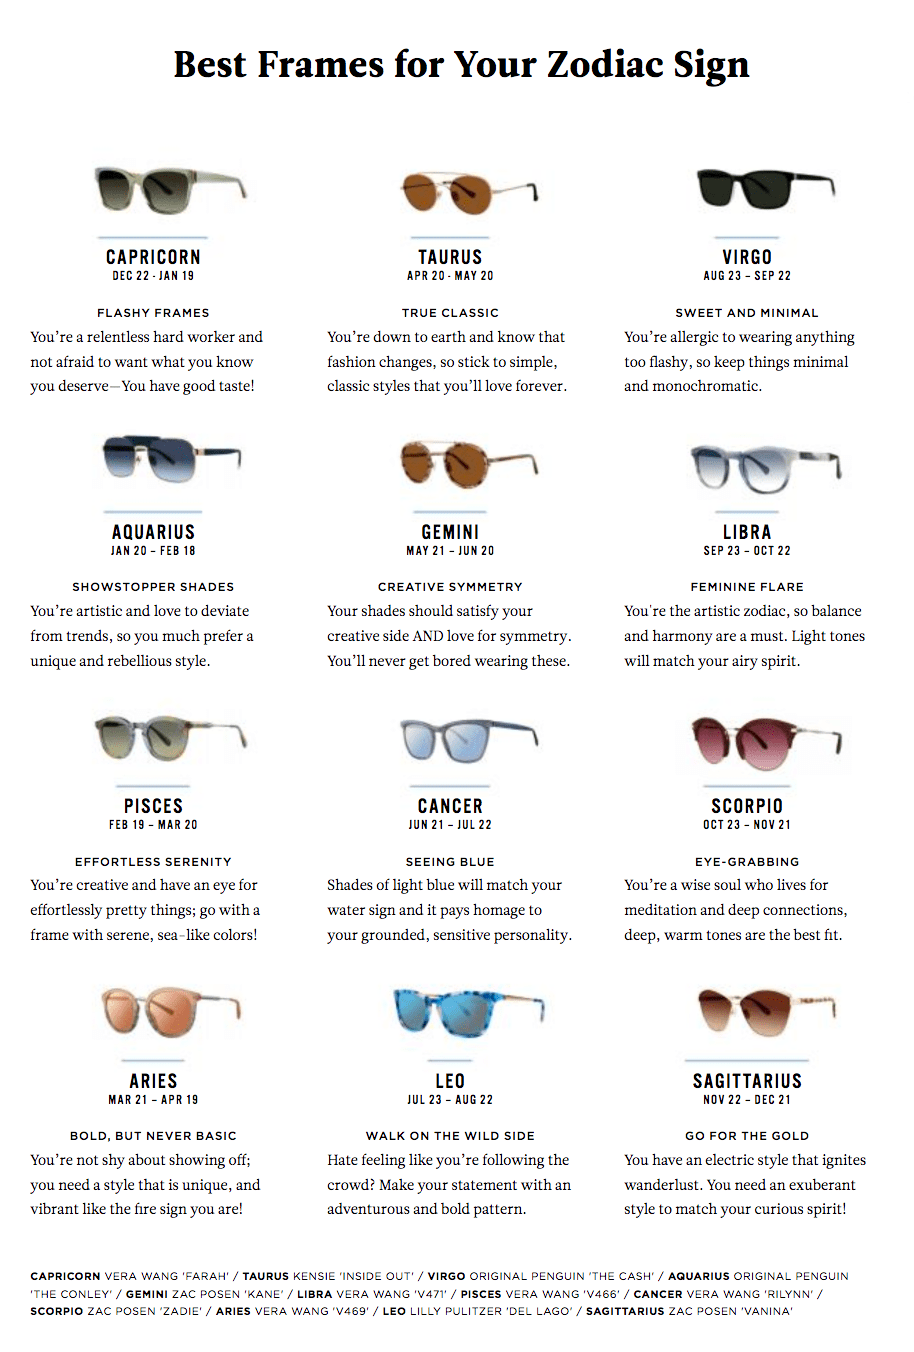 Zodiac Signs Sunnies For Your Zodiac Sign The Mirror